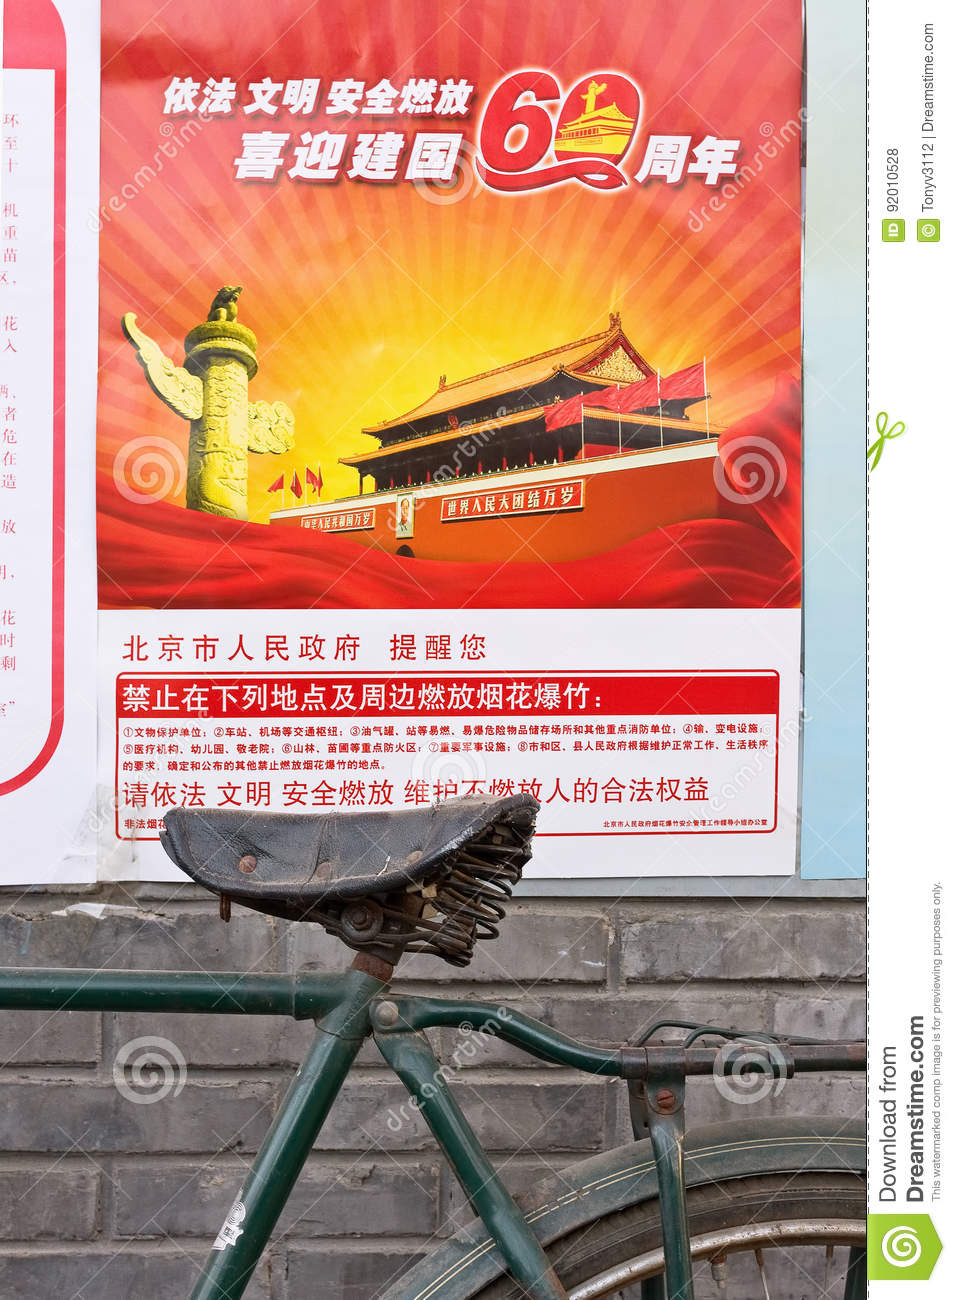 Poster For 60th Anniversary Of The PRC Beijing China Editorial